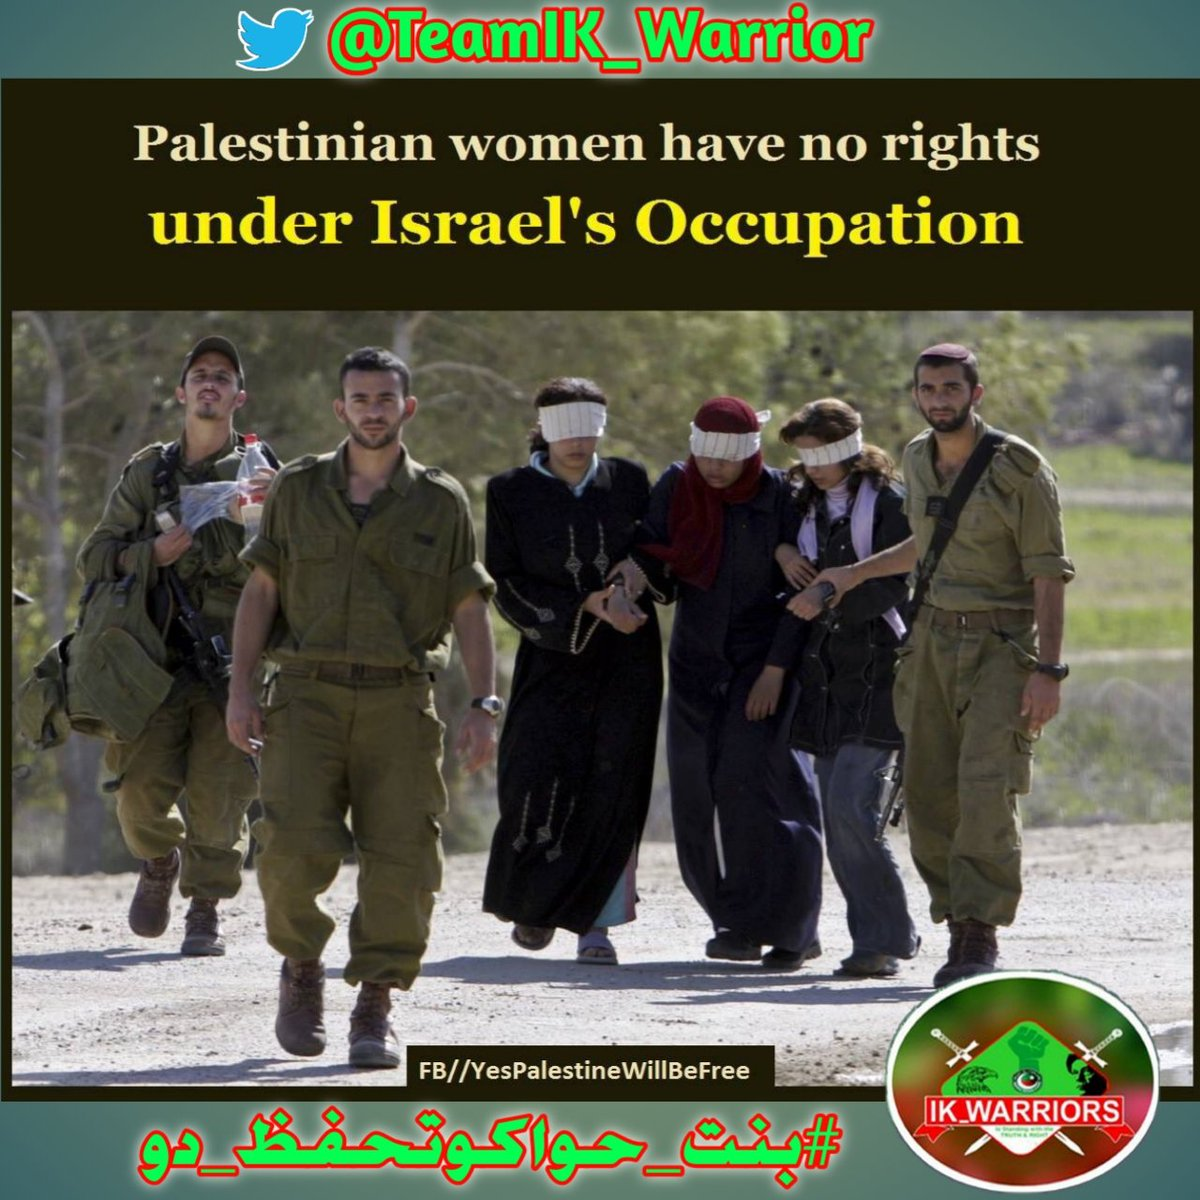 israeil is doing the same in plnstine as india in kashmir.rap and torture the women #بنت_حواکوتحفظ_دو